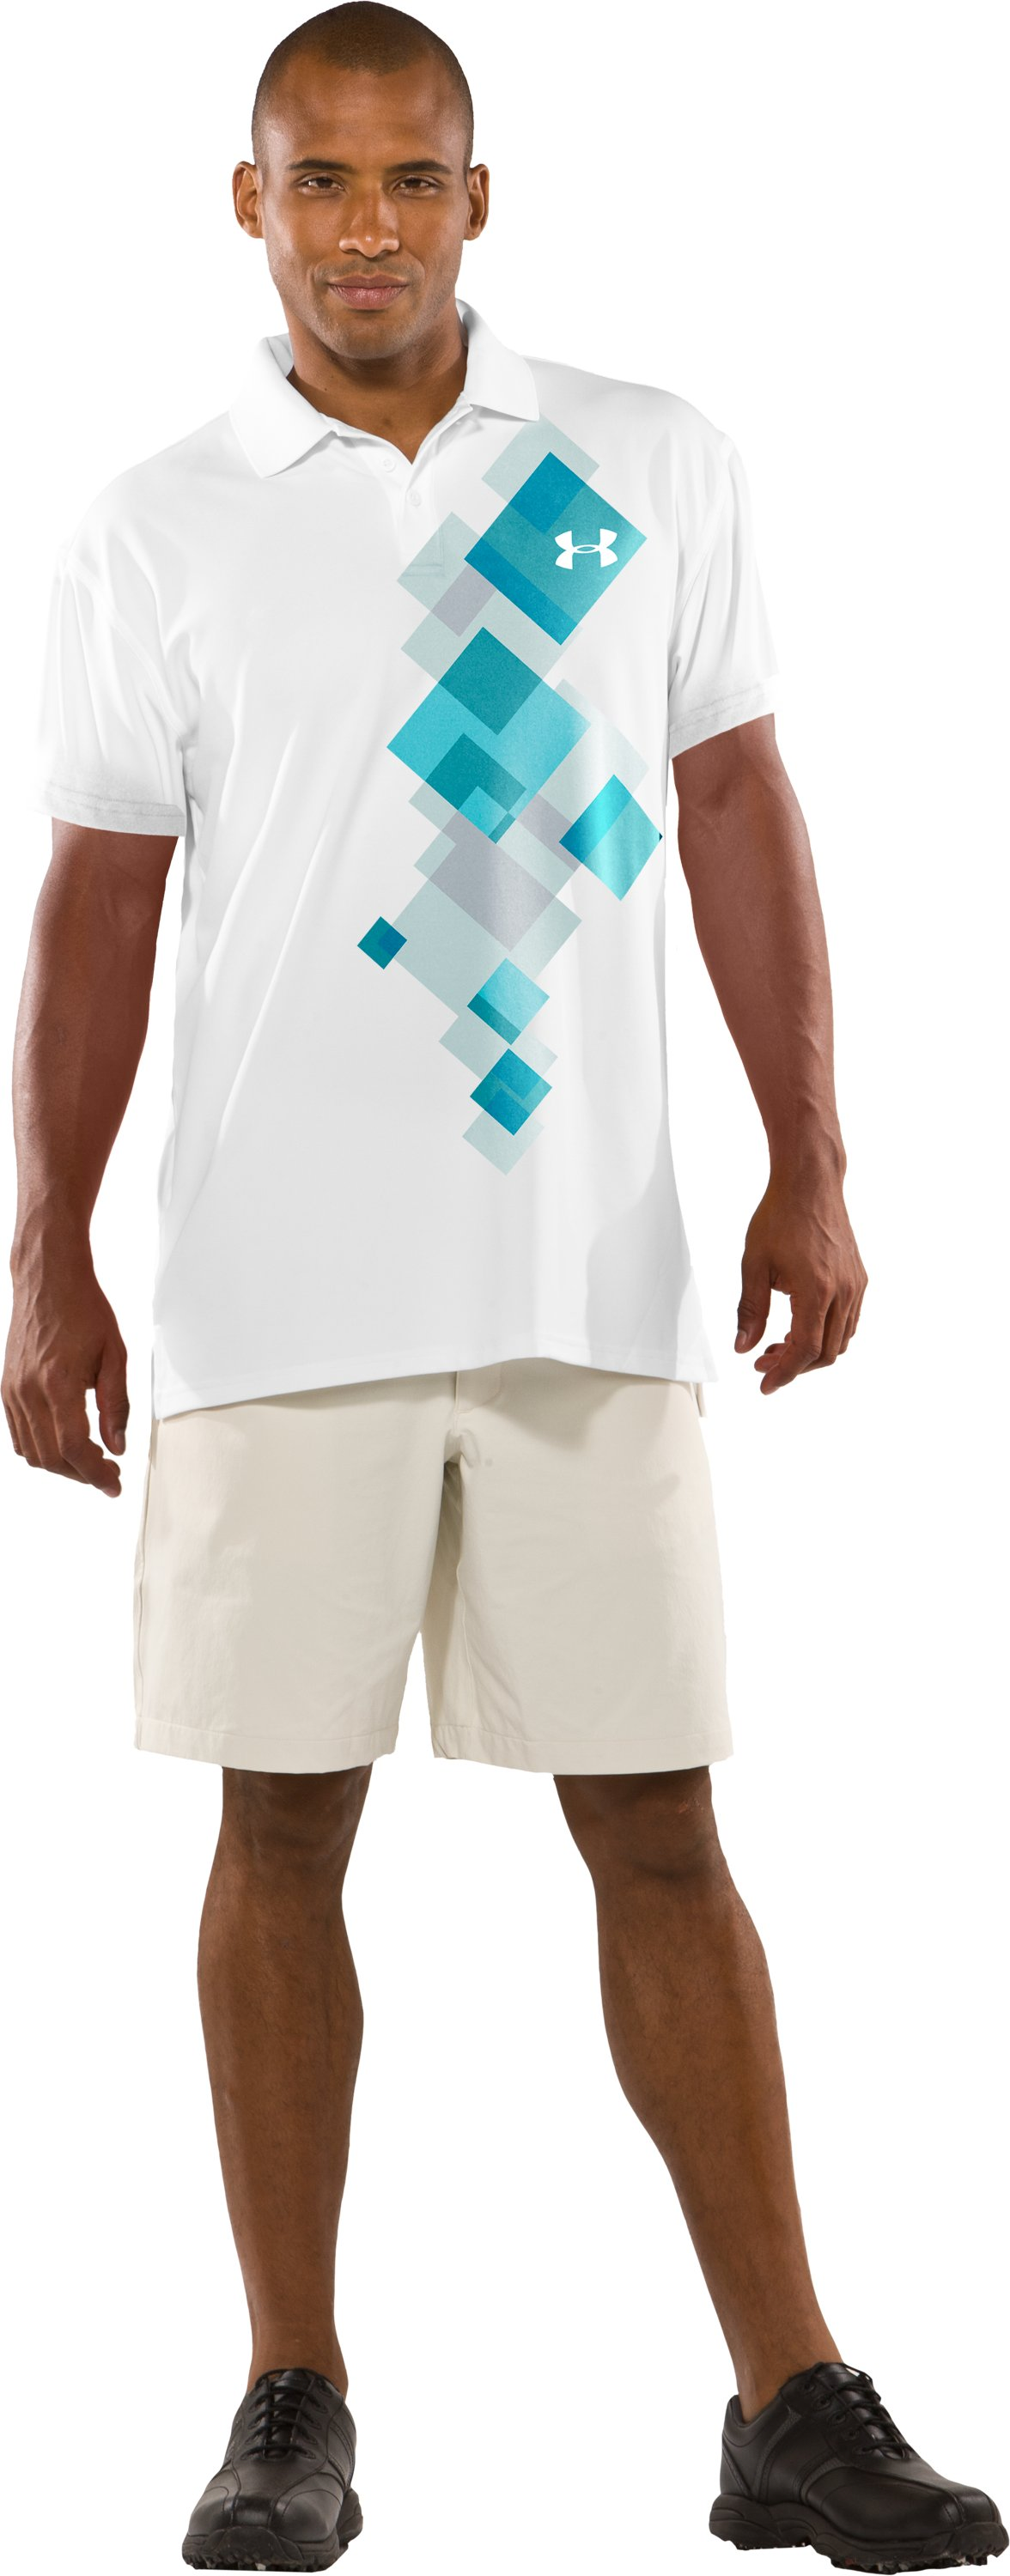 Men's Performance Graphic Polo, White, zoomed image